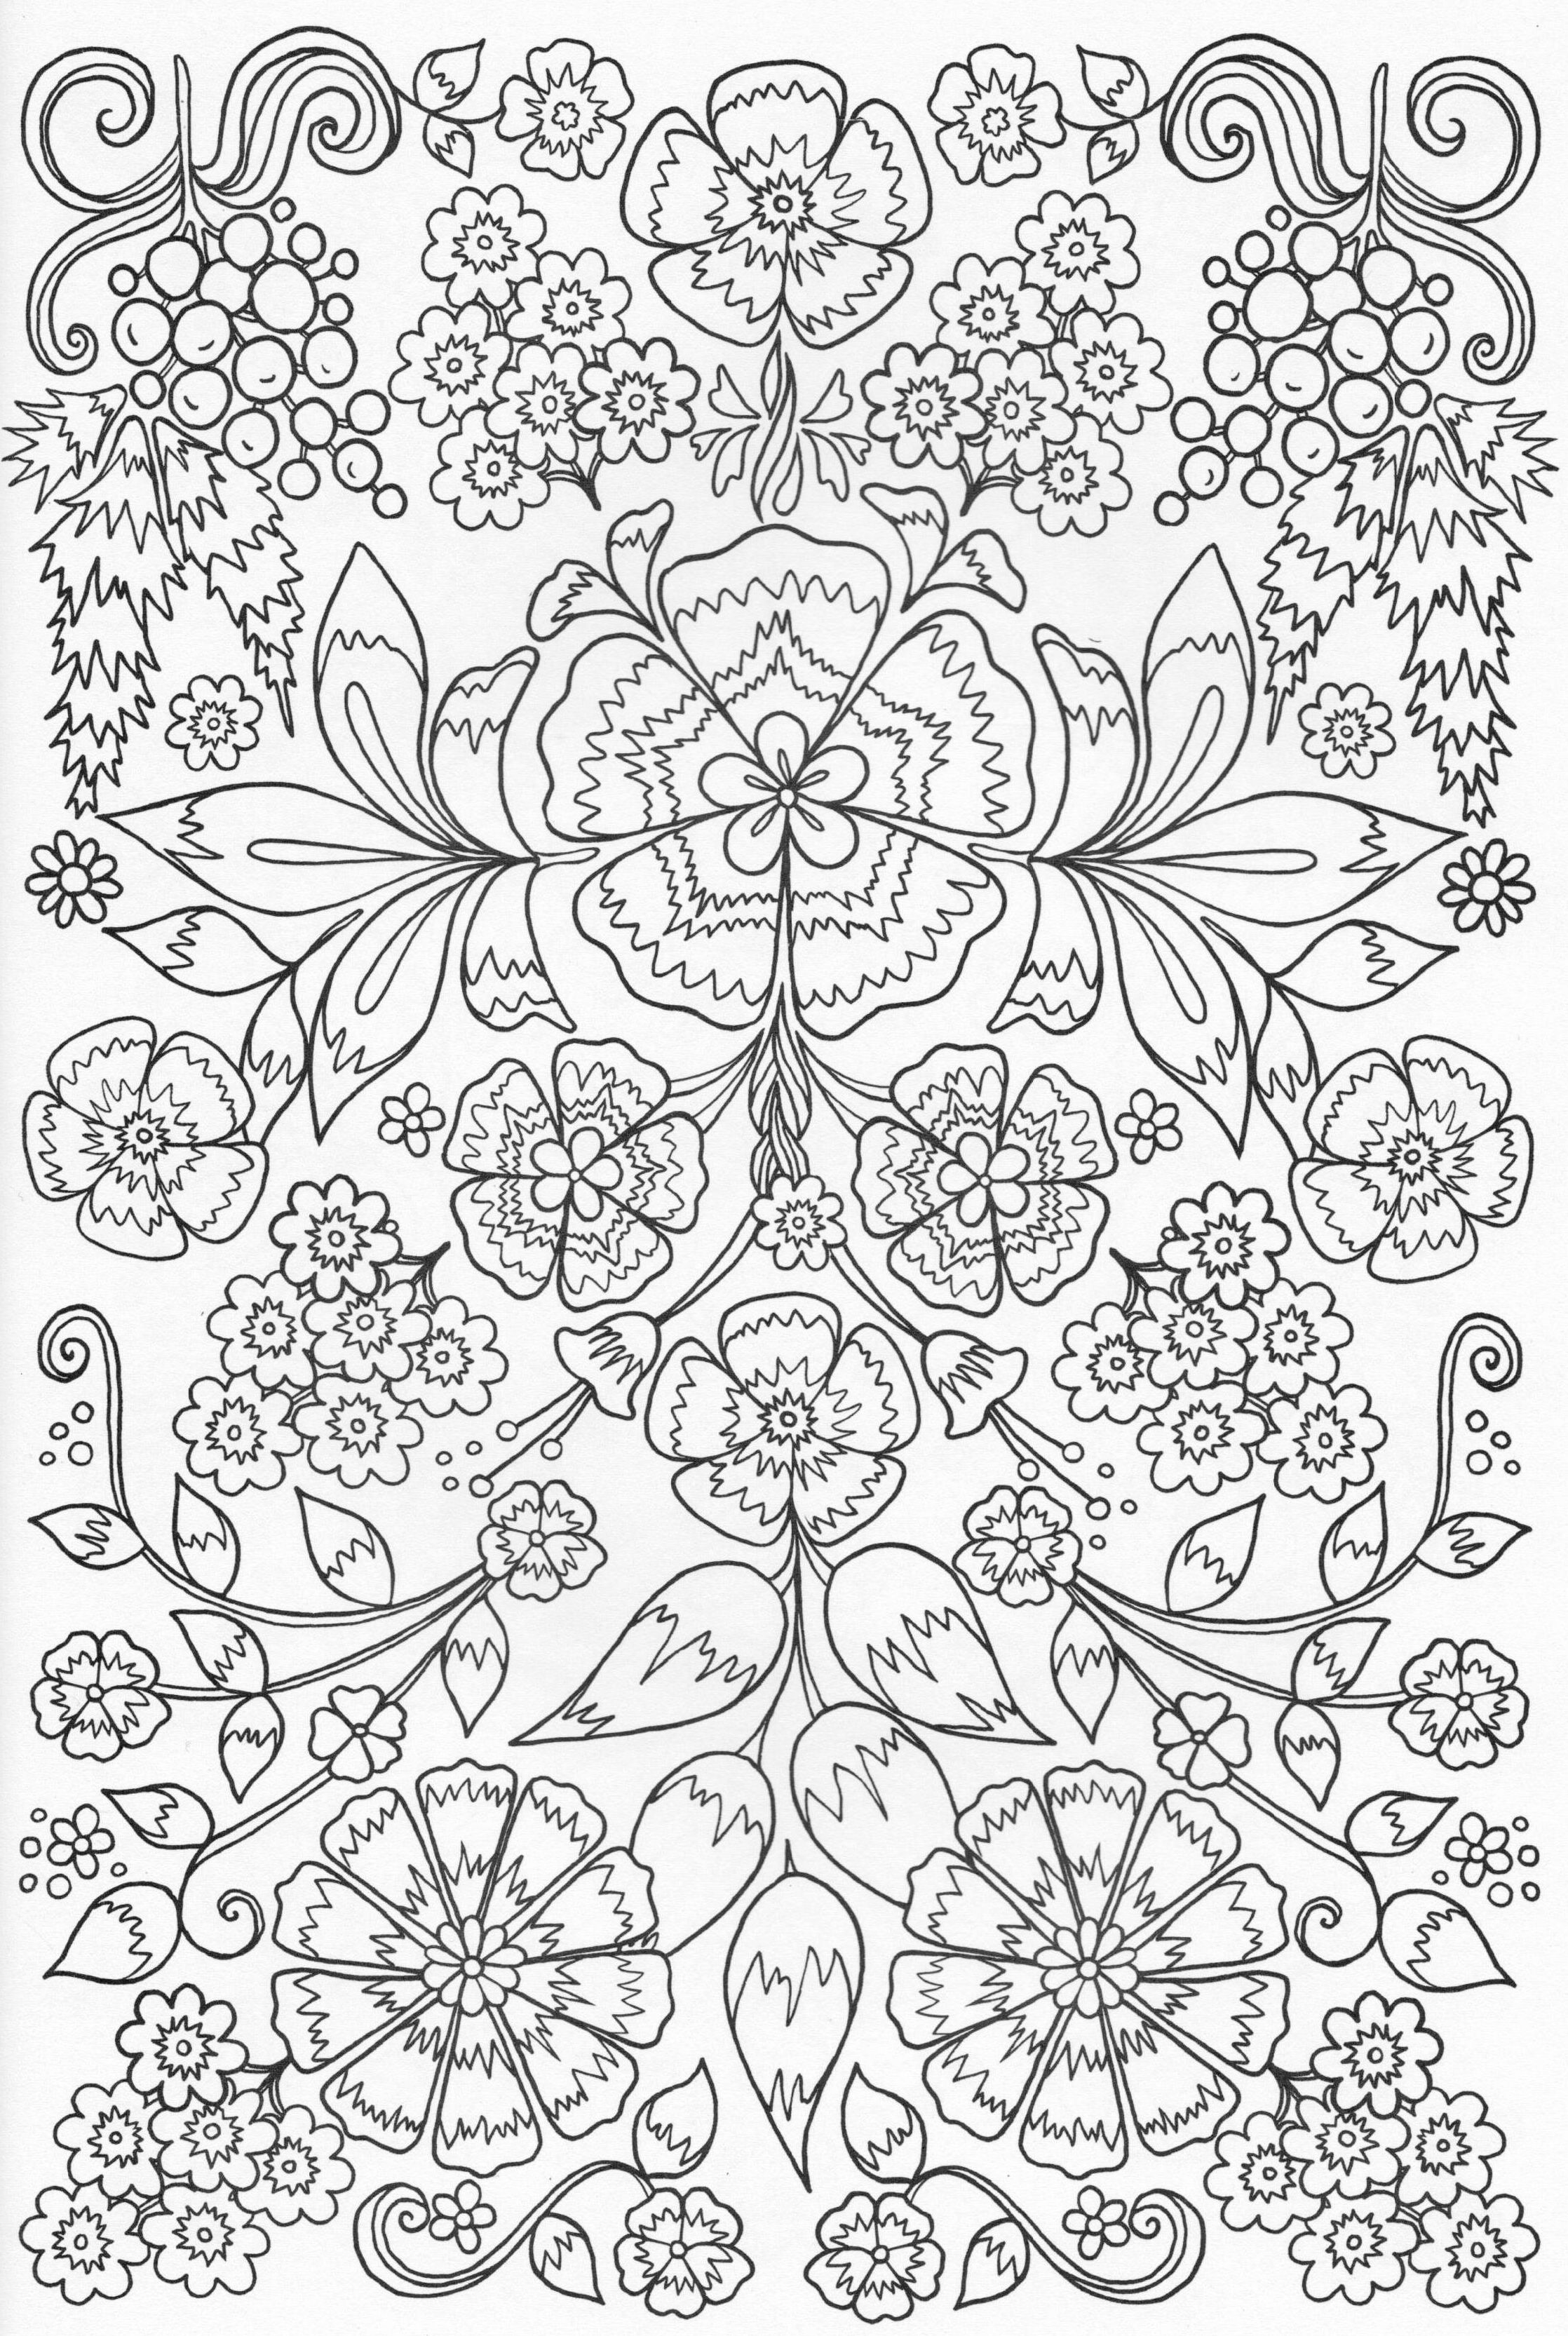 Adult coloring page Join my grownup coloring group on